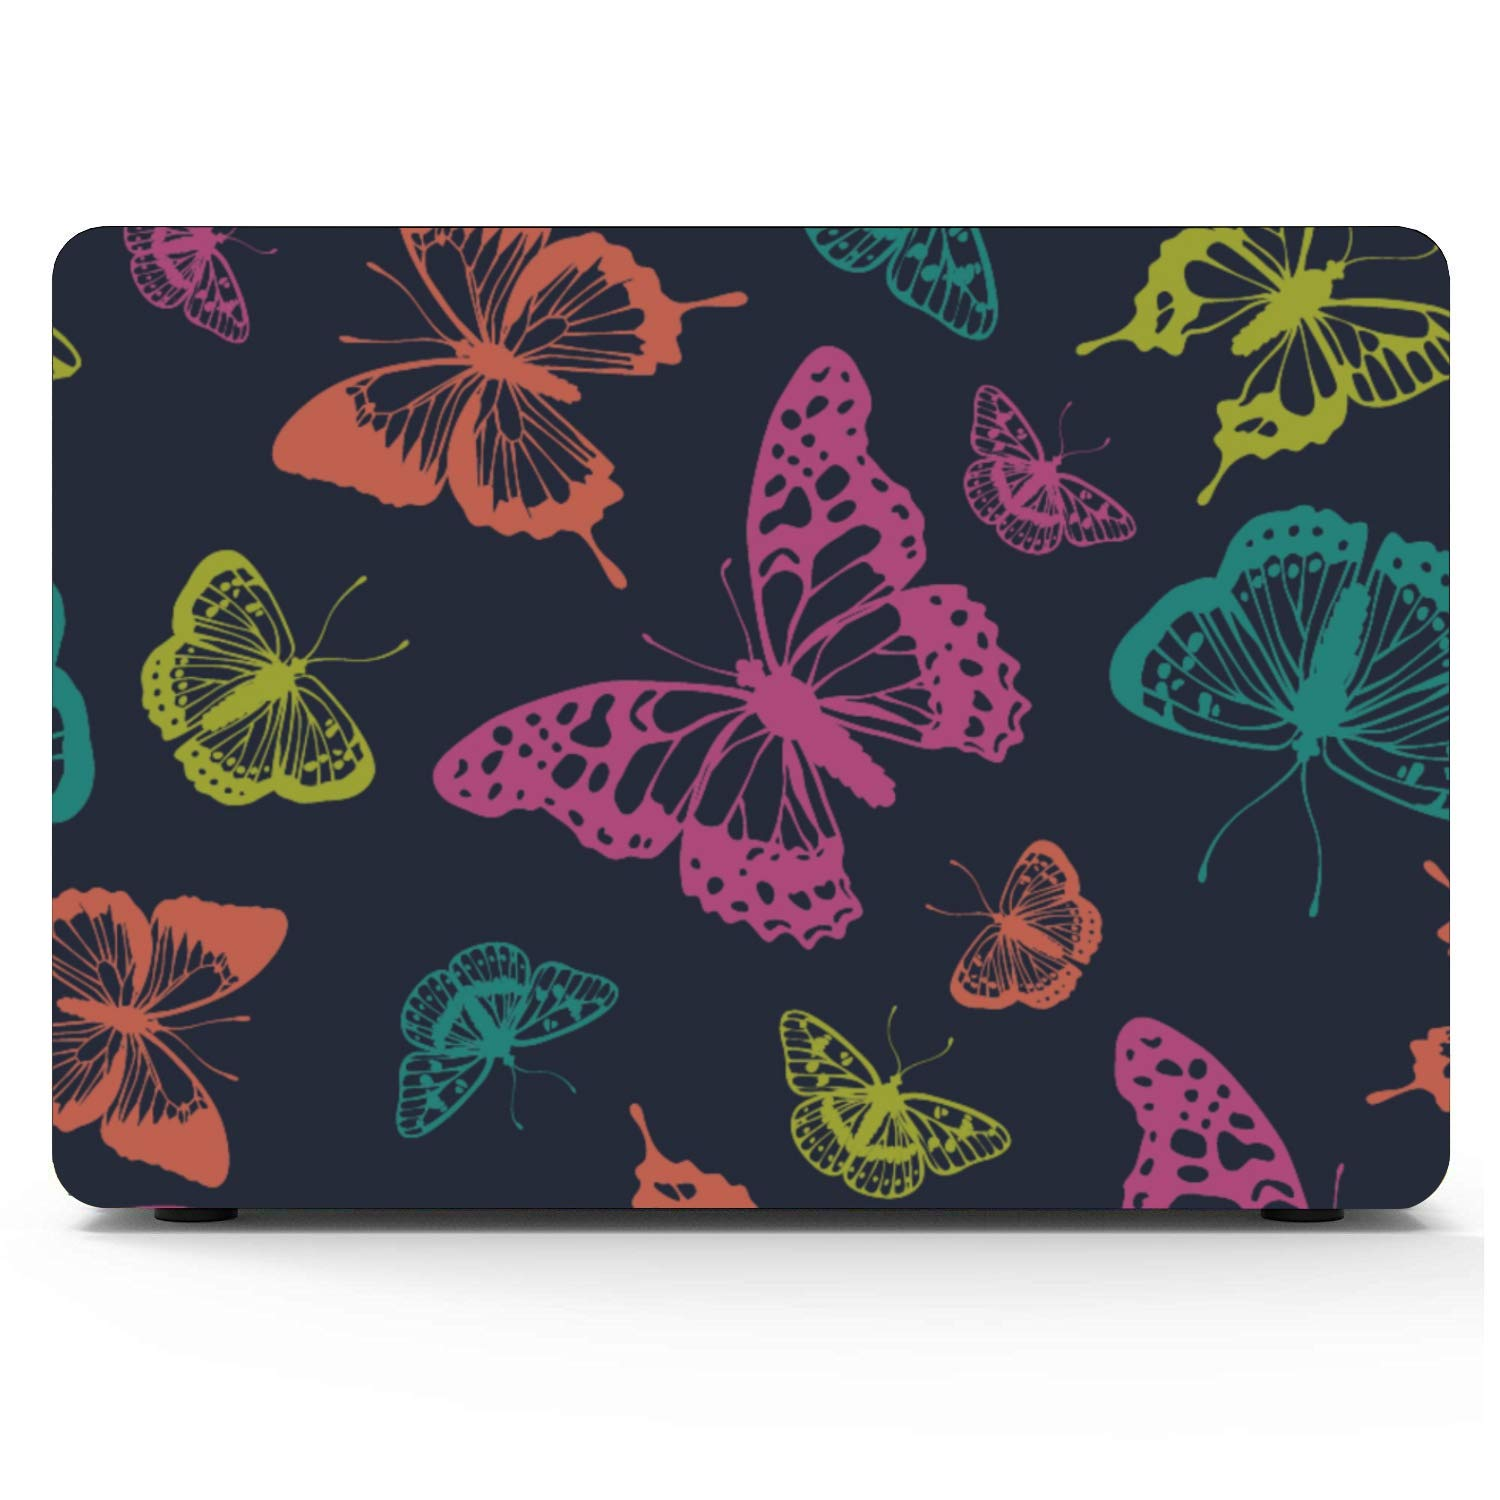 Mac Book Air Covers Spring Cute Butterfly Bee Flower Plastic Hard Shell Compatible Mac Air 11 Pro 13 15 MacBook Air Protective Cover Protection for MacBook 2016-2019 Version